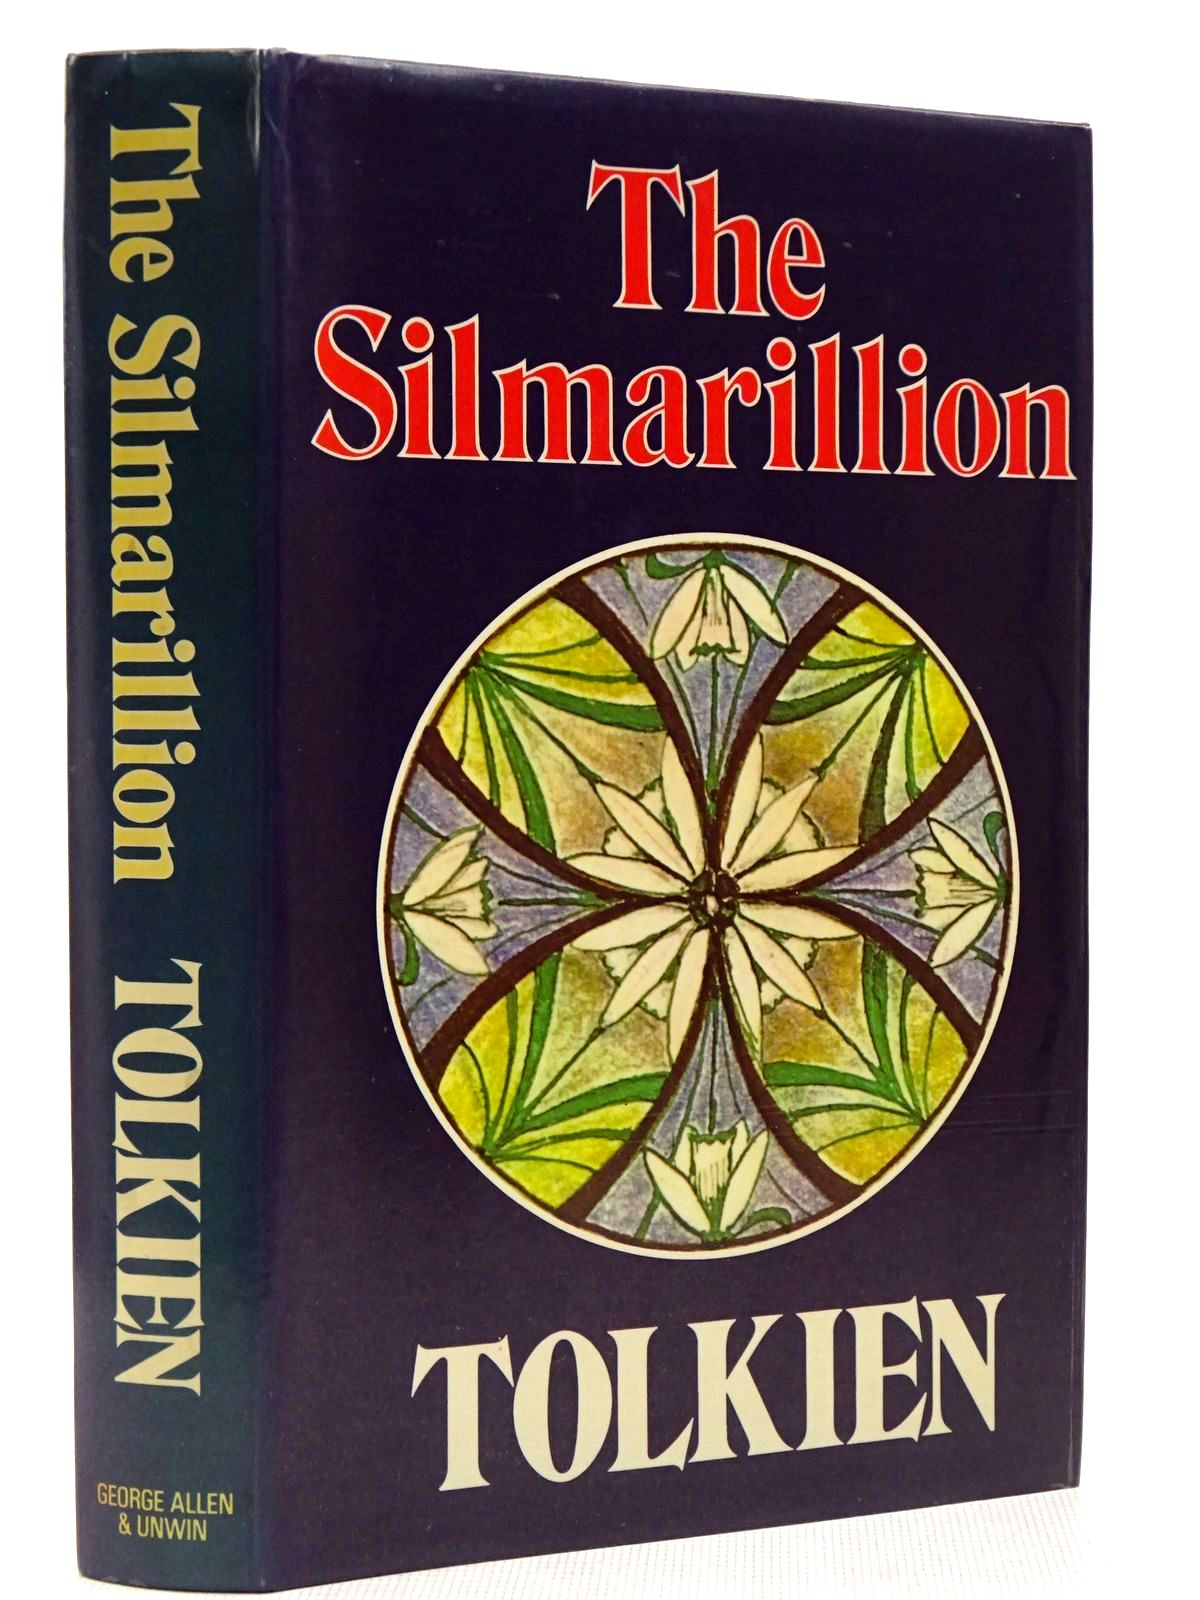 Photo of THE SILMARILLION written by Tolkien, J.R.R. Tolkien, Christopher published by George Allen & Unwin (STOCK CODE: 2129349)  for sale by Stella & Rose's Books